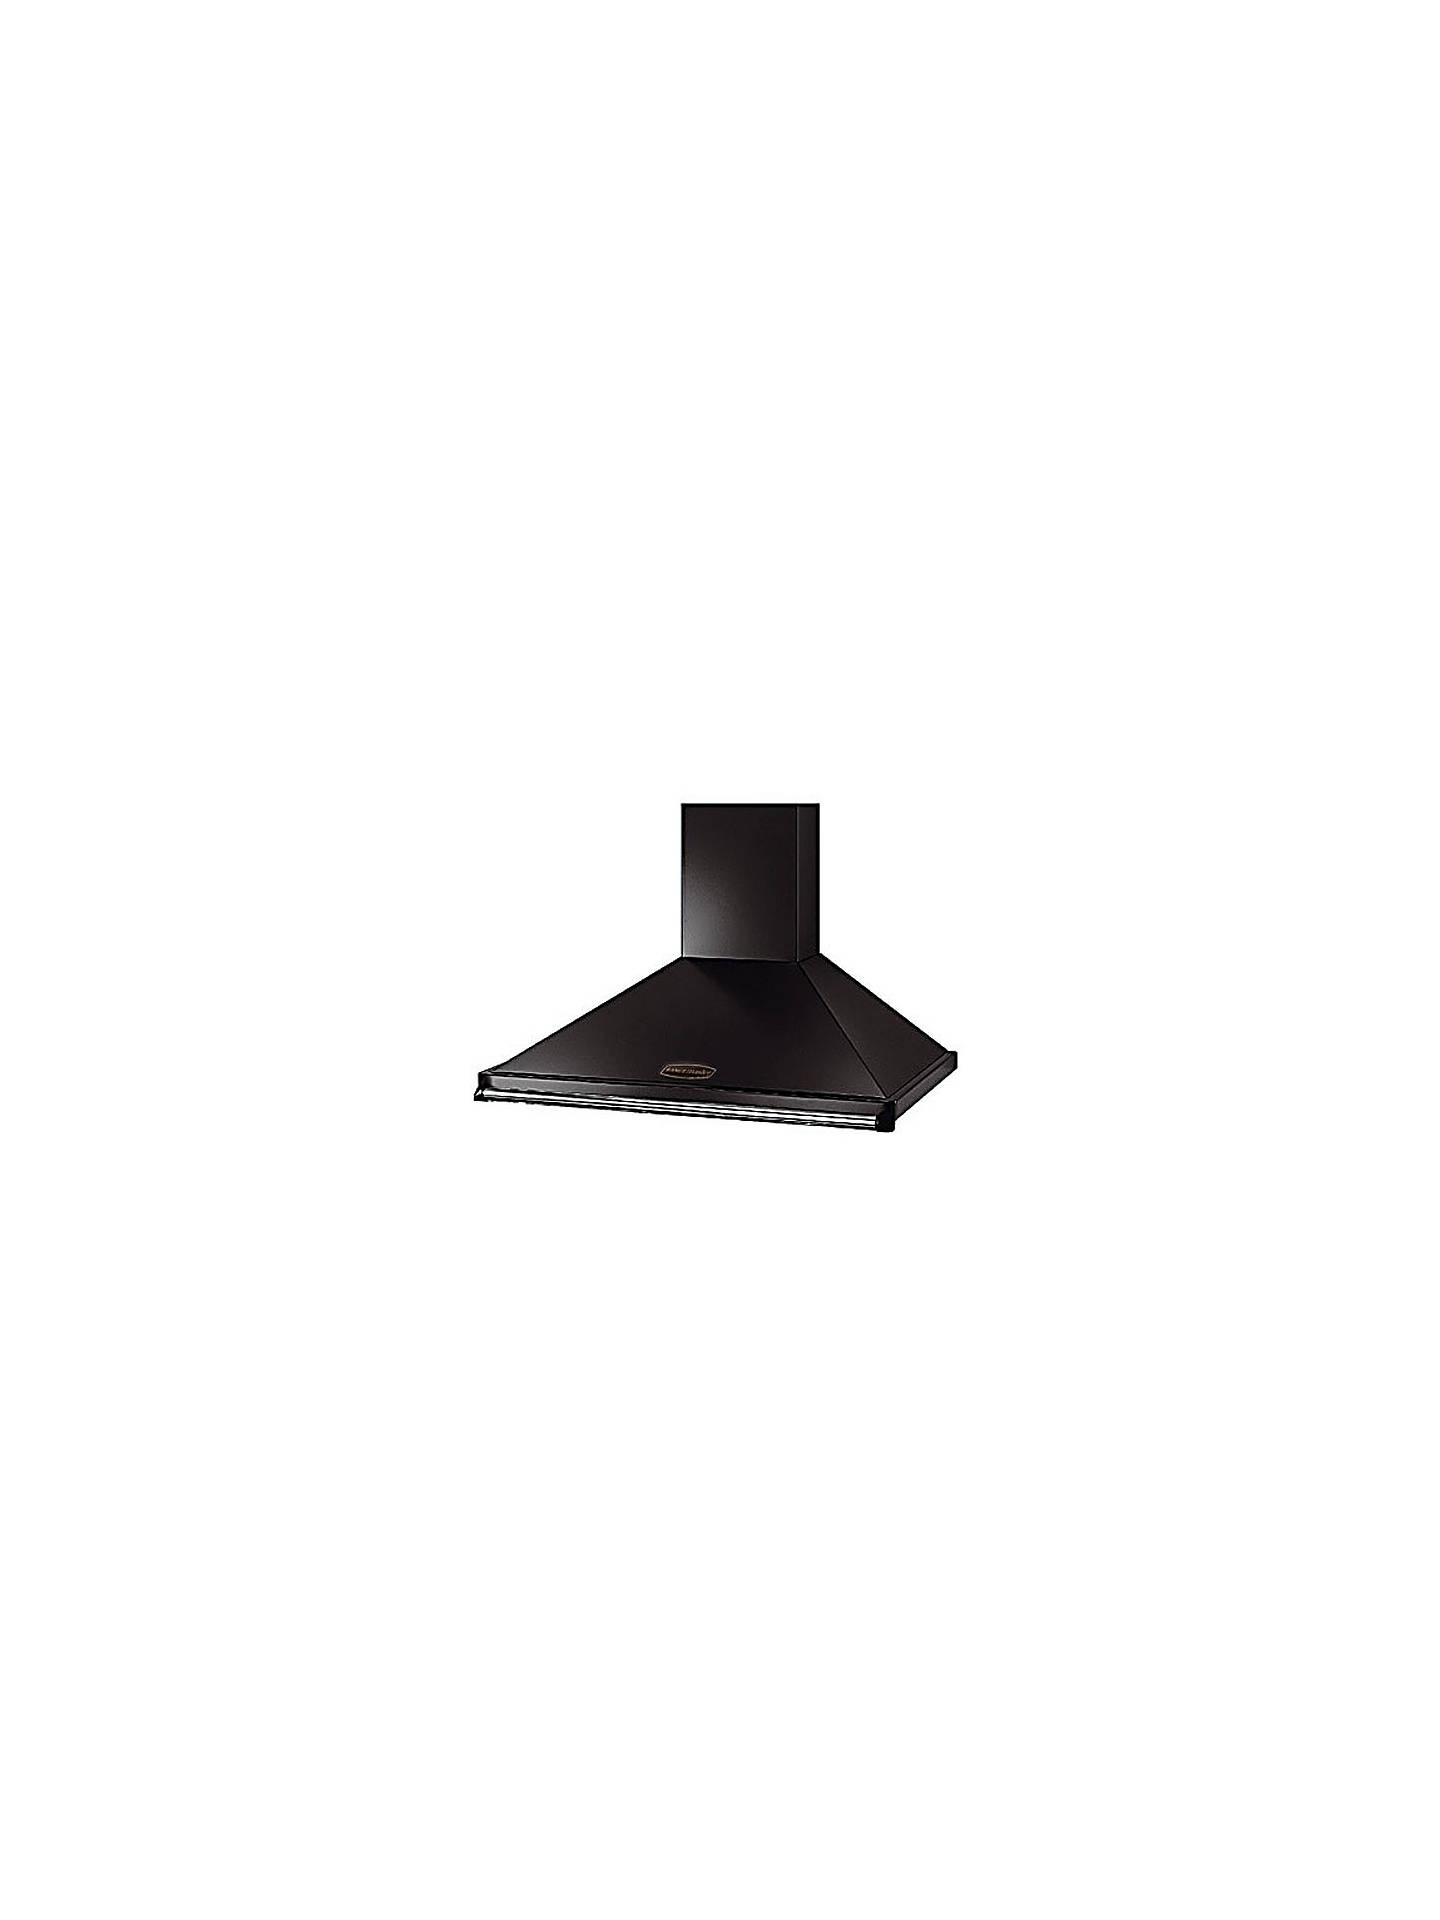 Buy Rangemaster Classic 90 Cooker Hood, Black with Chrome Rail Online at johnlewis.com